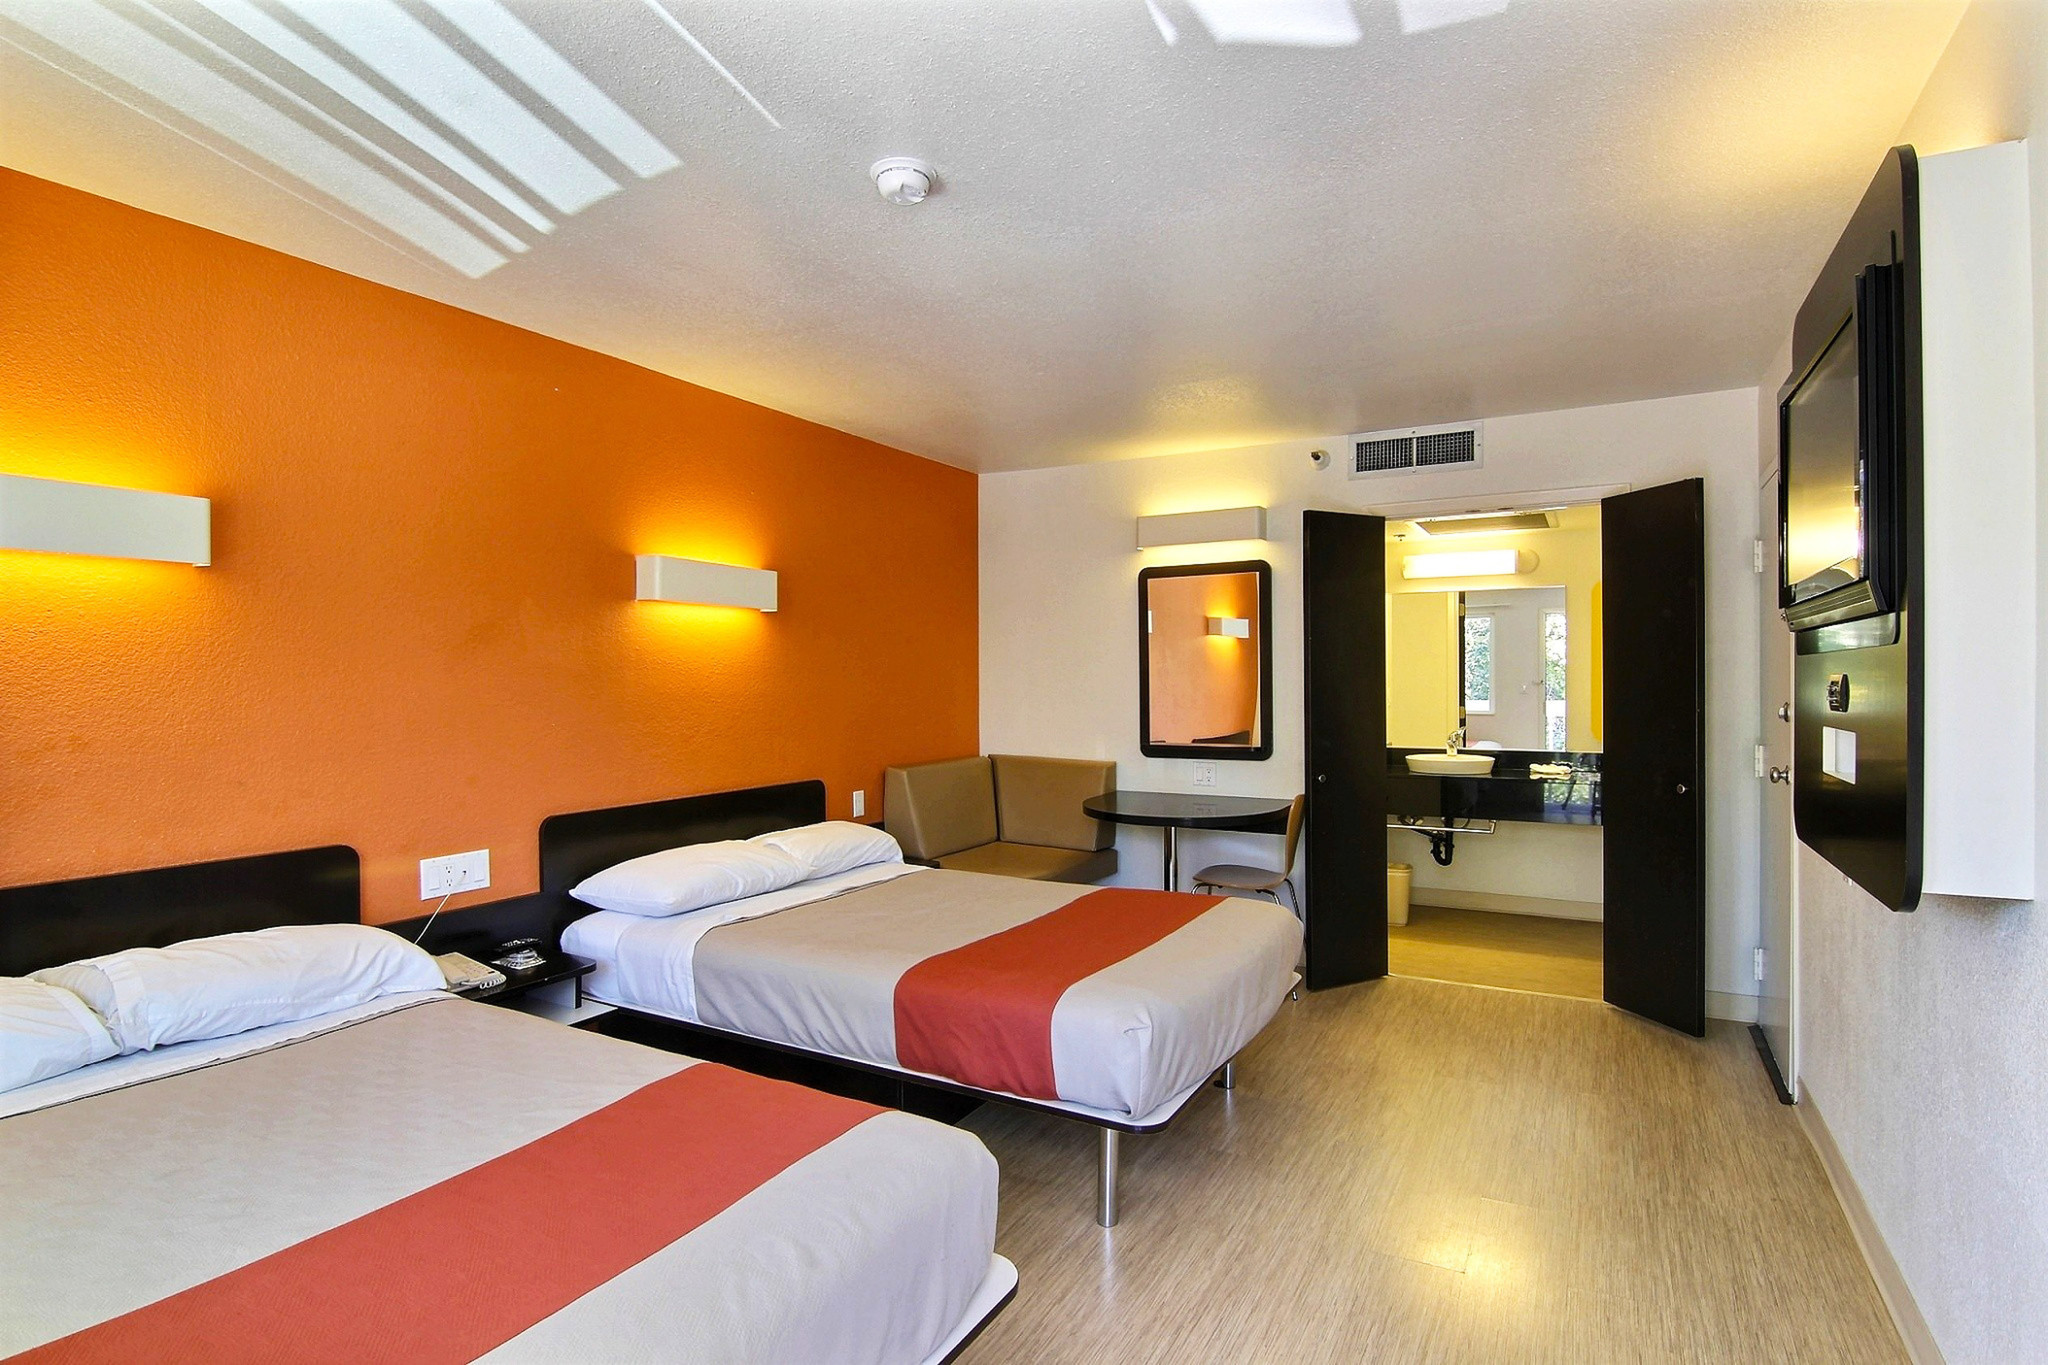 Motel 6 - Compare Motel 6 prices - Book Motel 6 for lessBest Price Guarantee· Free Cancellation· Discounts up to 80%· No Booking FeesDestinations: New York City, Miami Beach, Florida, Las Vegas, Myrtle Beach, Chicago.